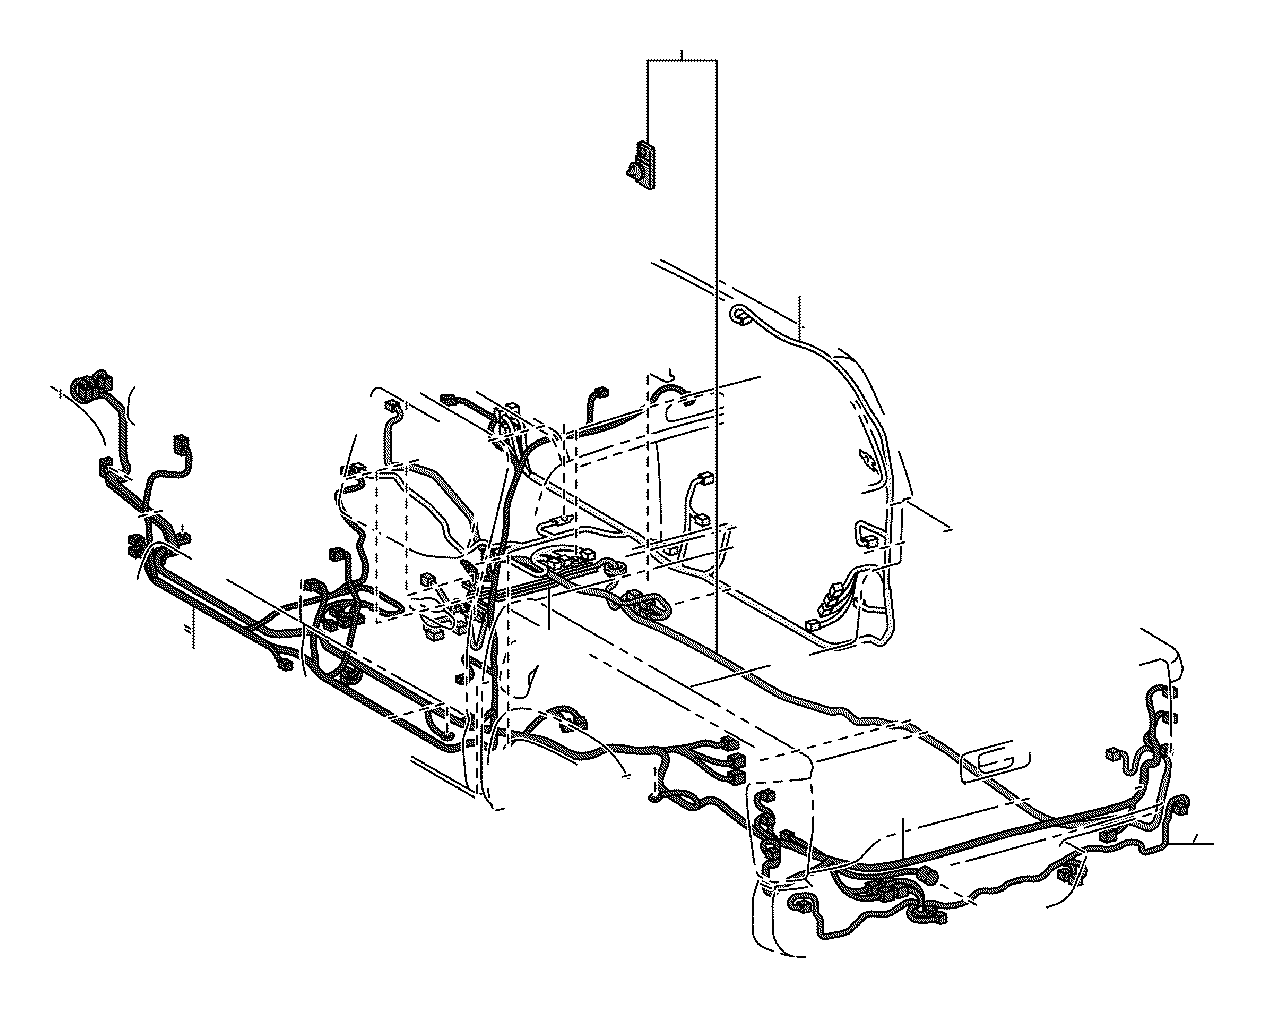 Toyota Tacoma Wire frame, no. 3. Engine, clamp, floor